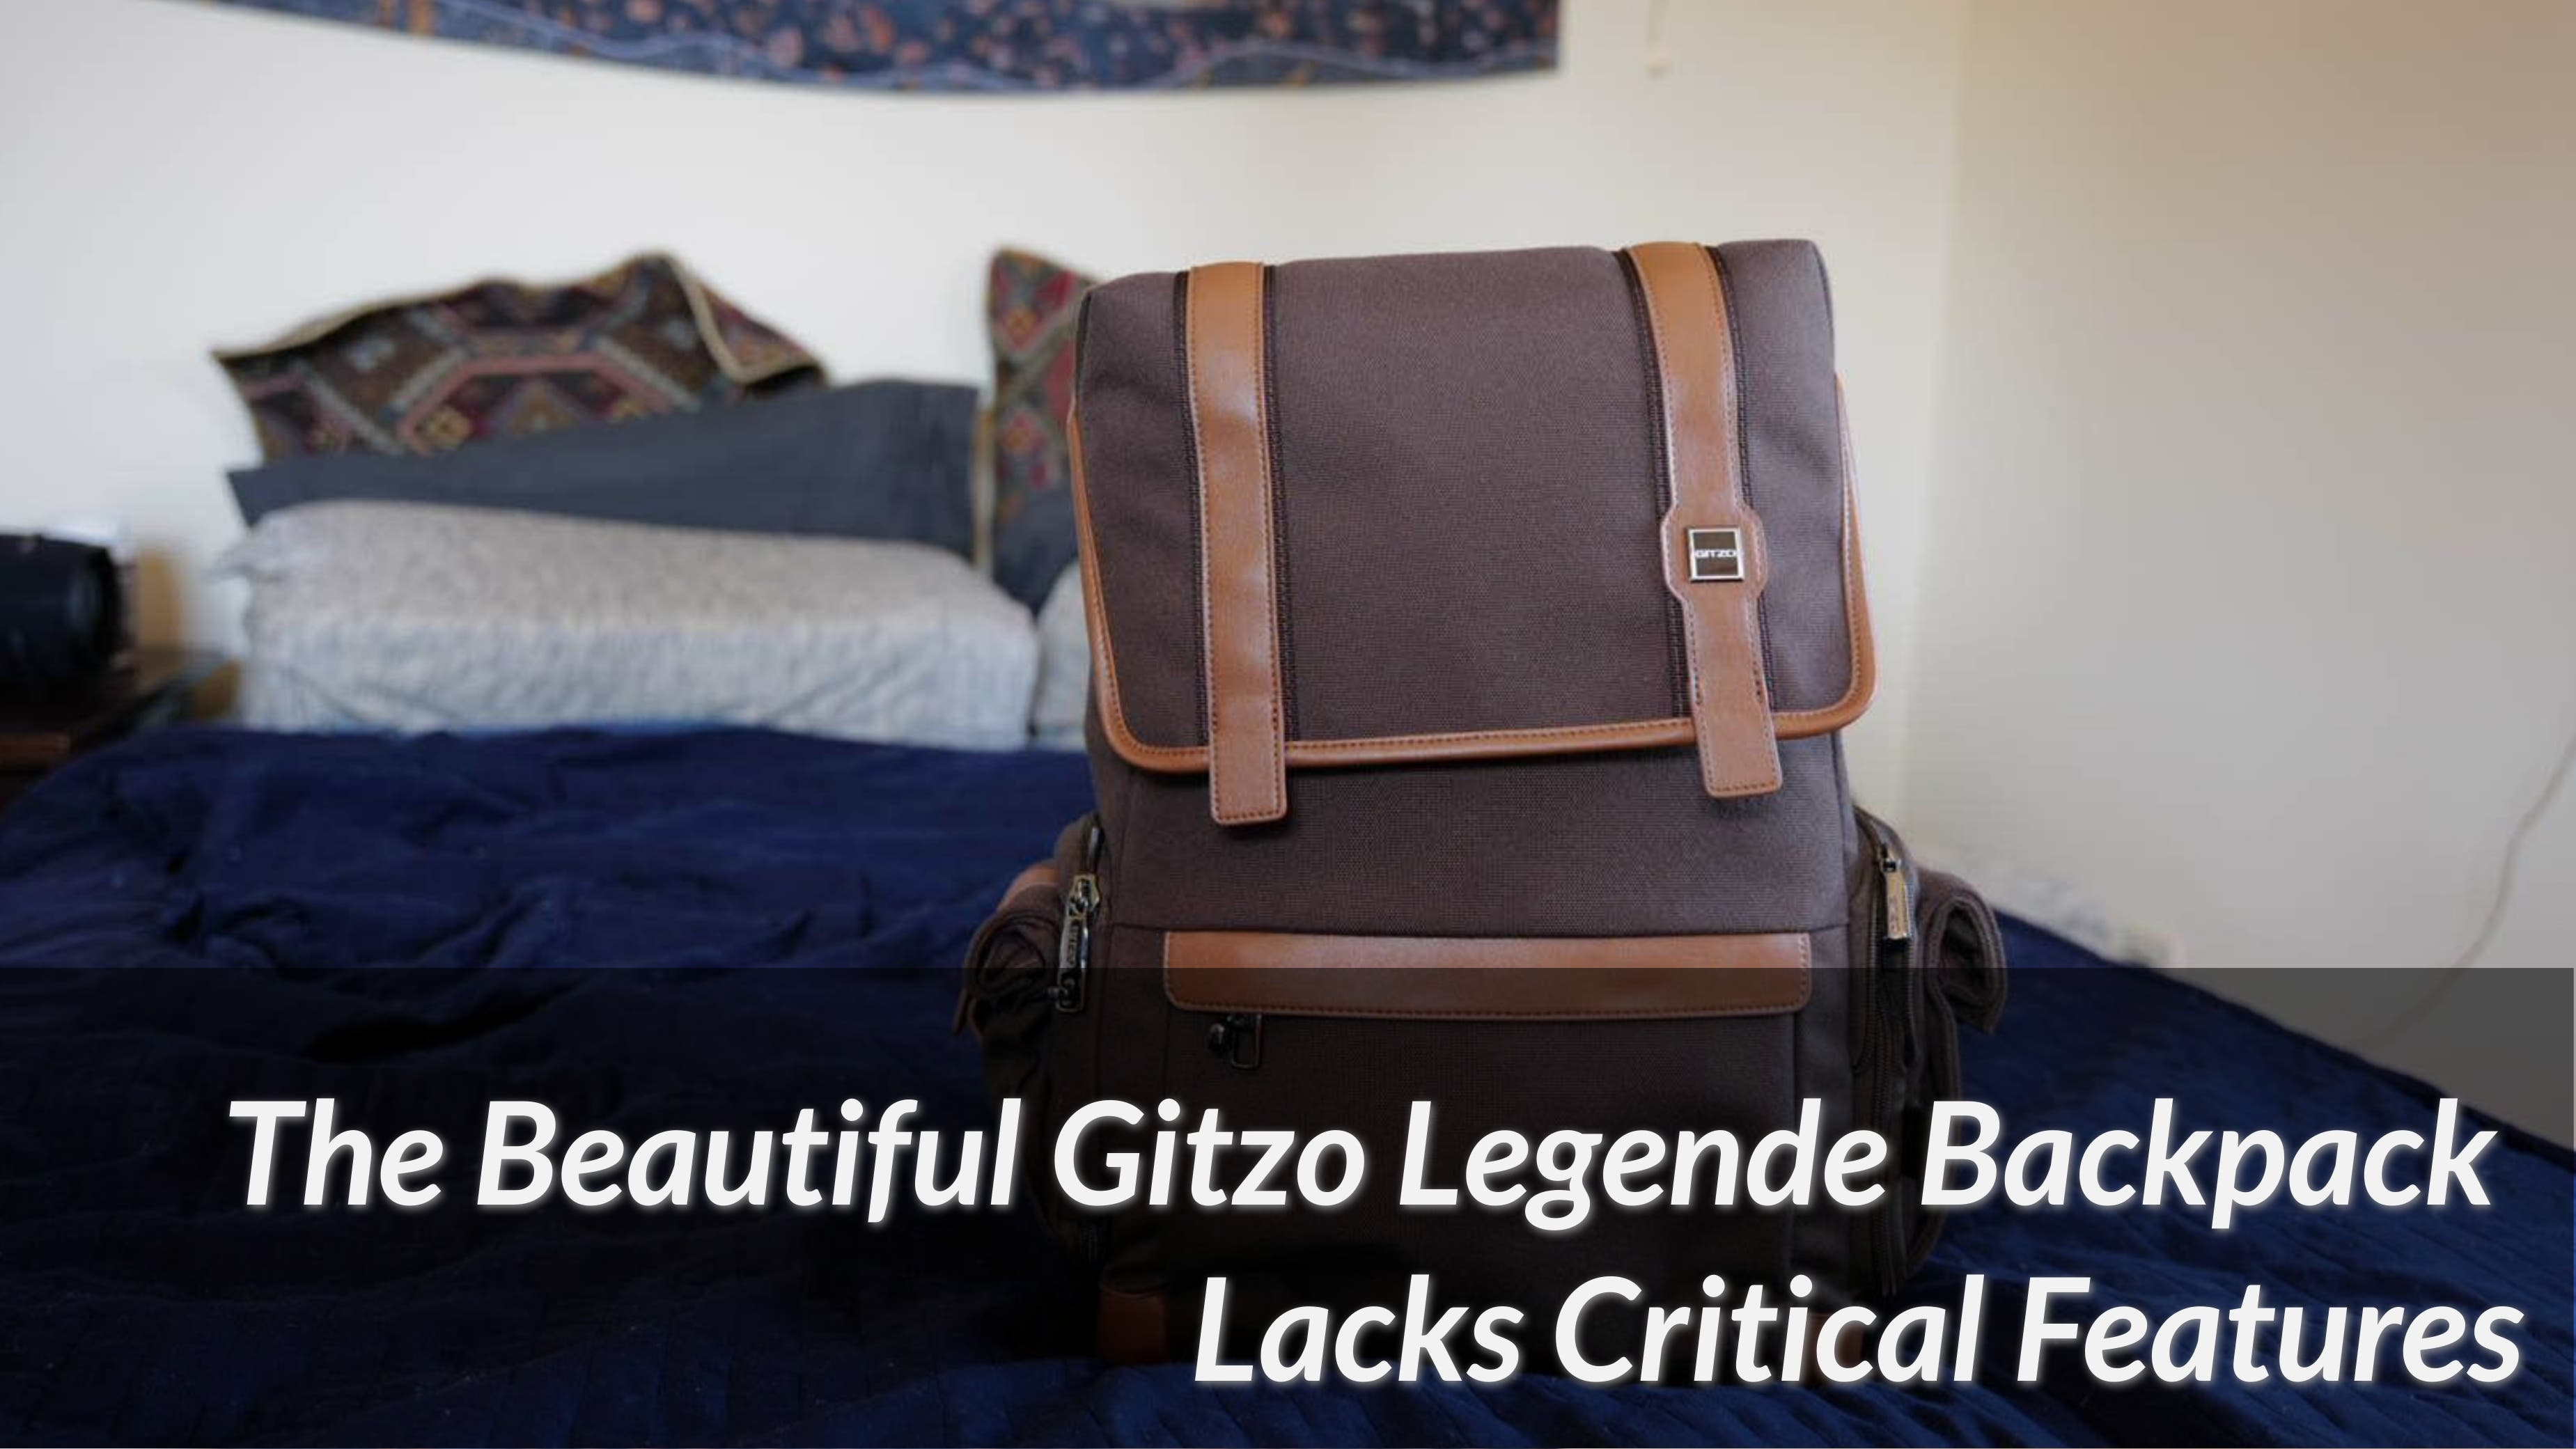 The Beautiful Gitzo Legende Backpack Lacks Critical Features